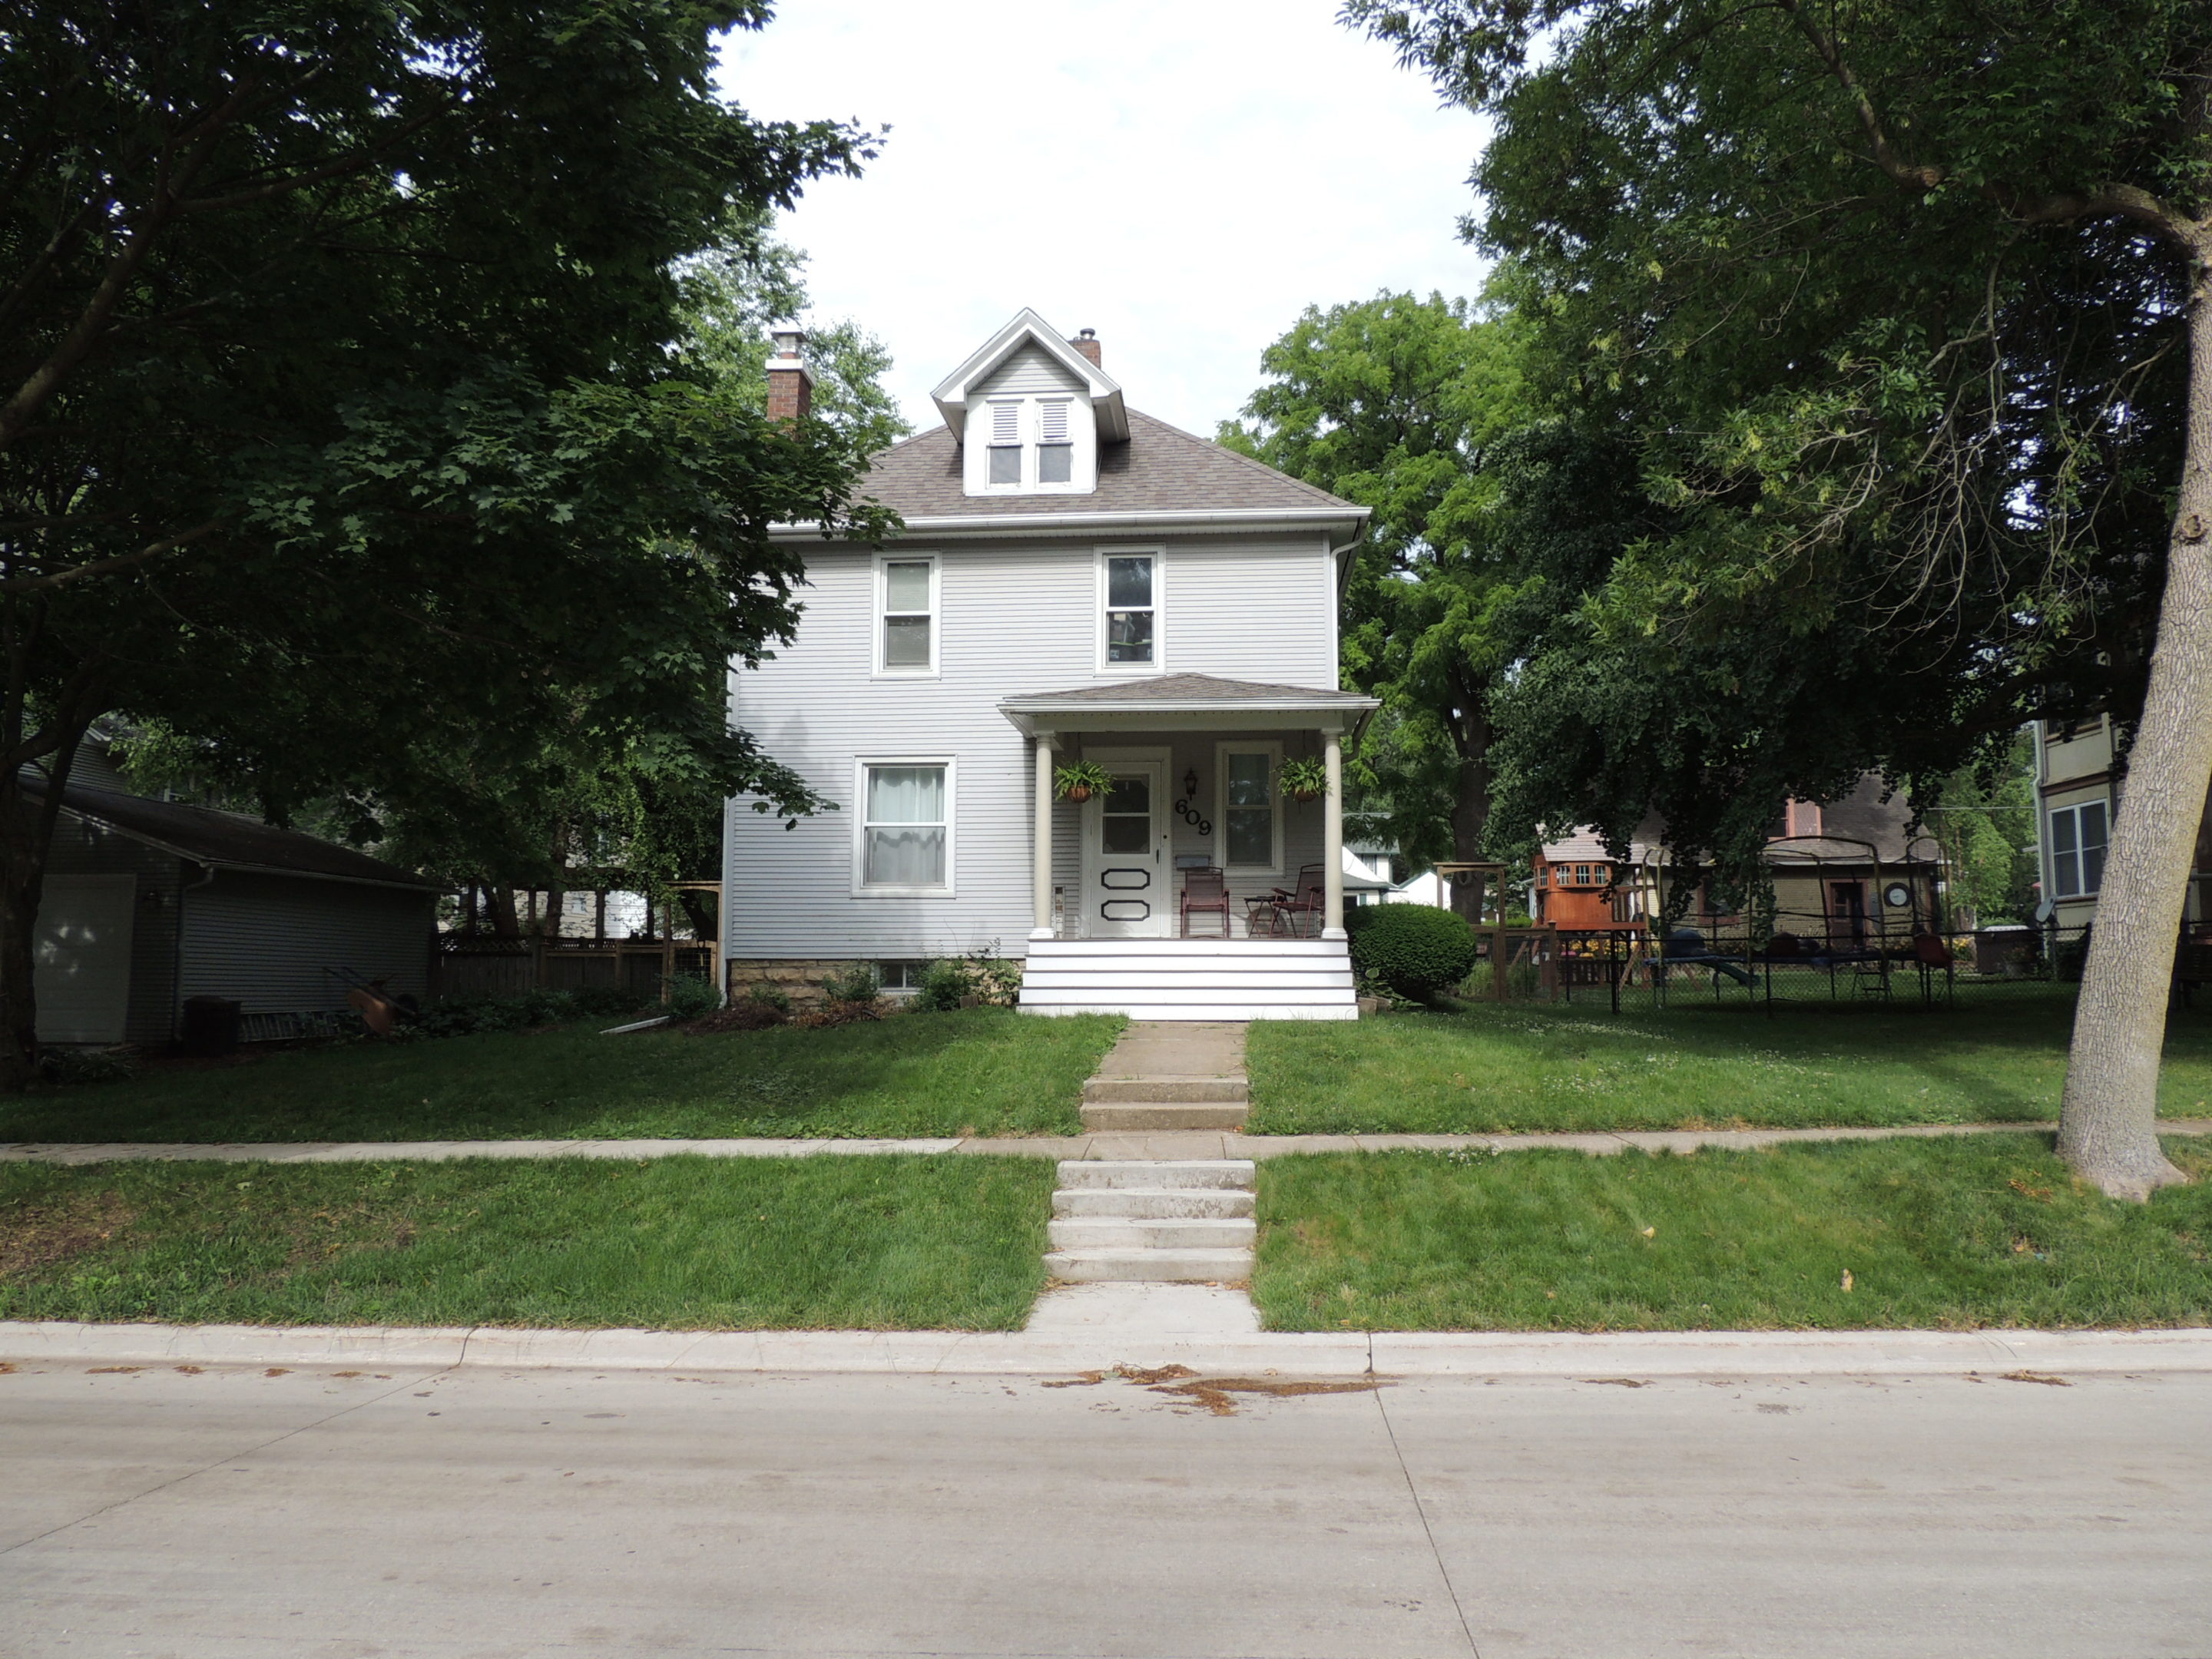 Photo of house at 609 5th Avenue